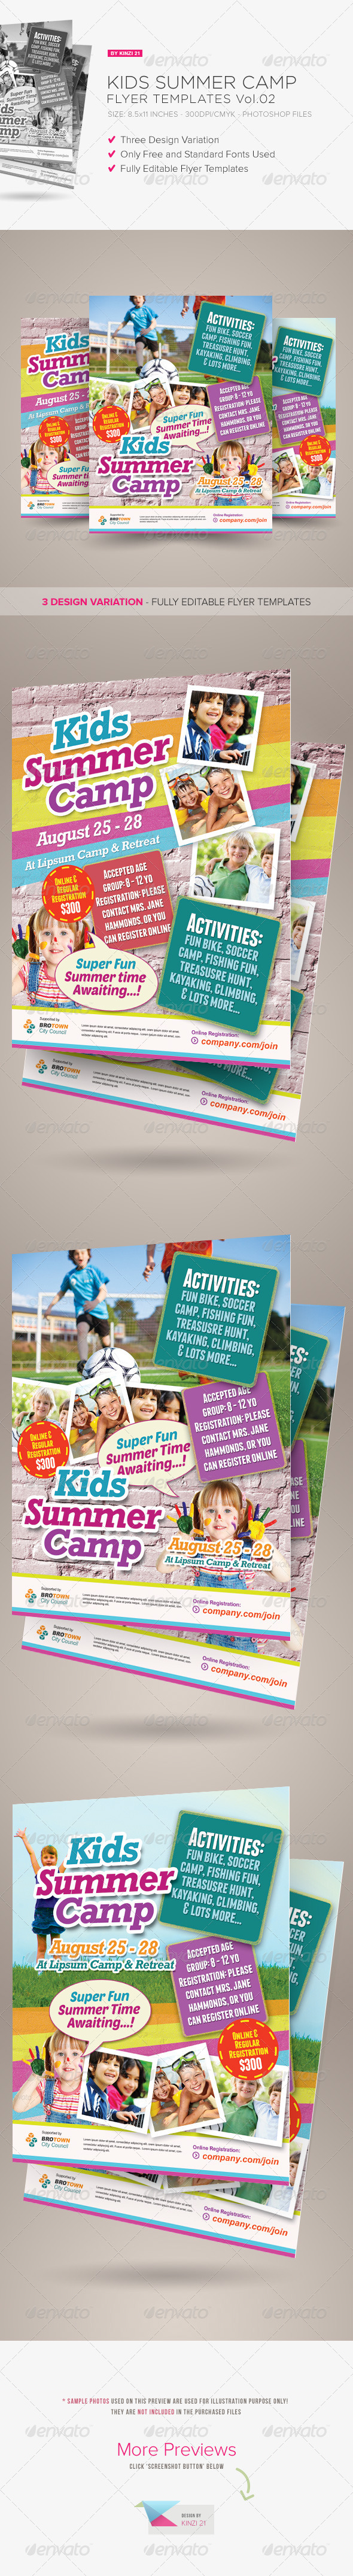 GraphicRiver Kids Summer Camp Flyers Vol.02 7794070